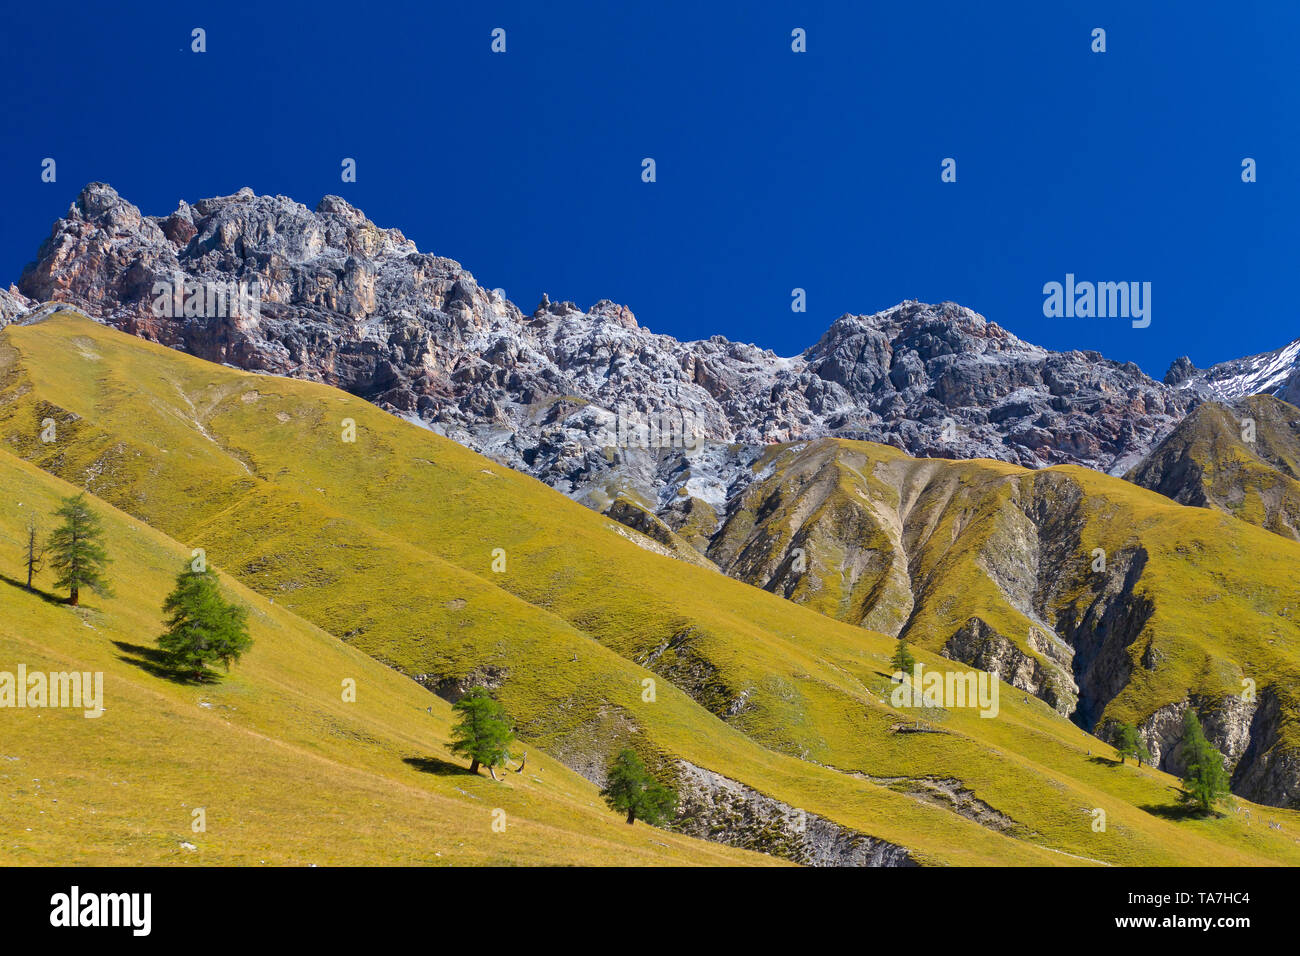 View of Piz Fier, Val Trupchun, Swiss National Park, Graubuenden, Switzerland - Stock Image